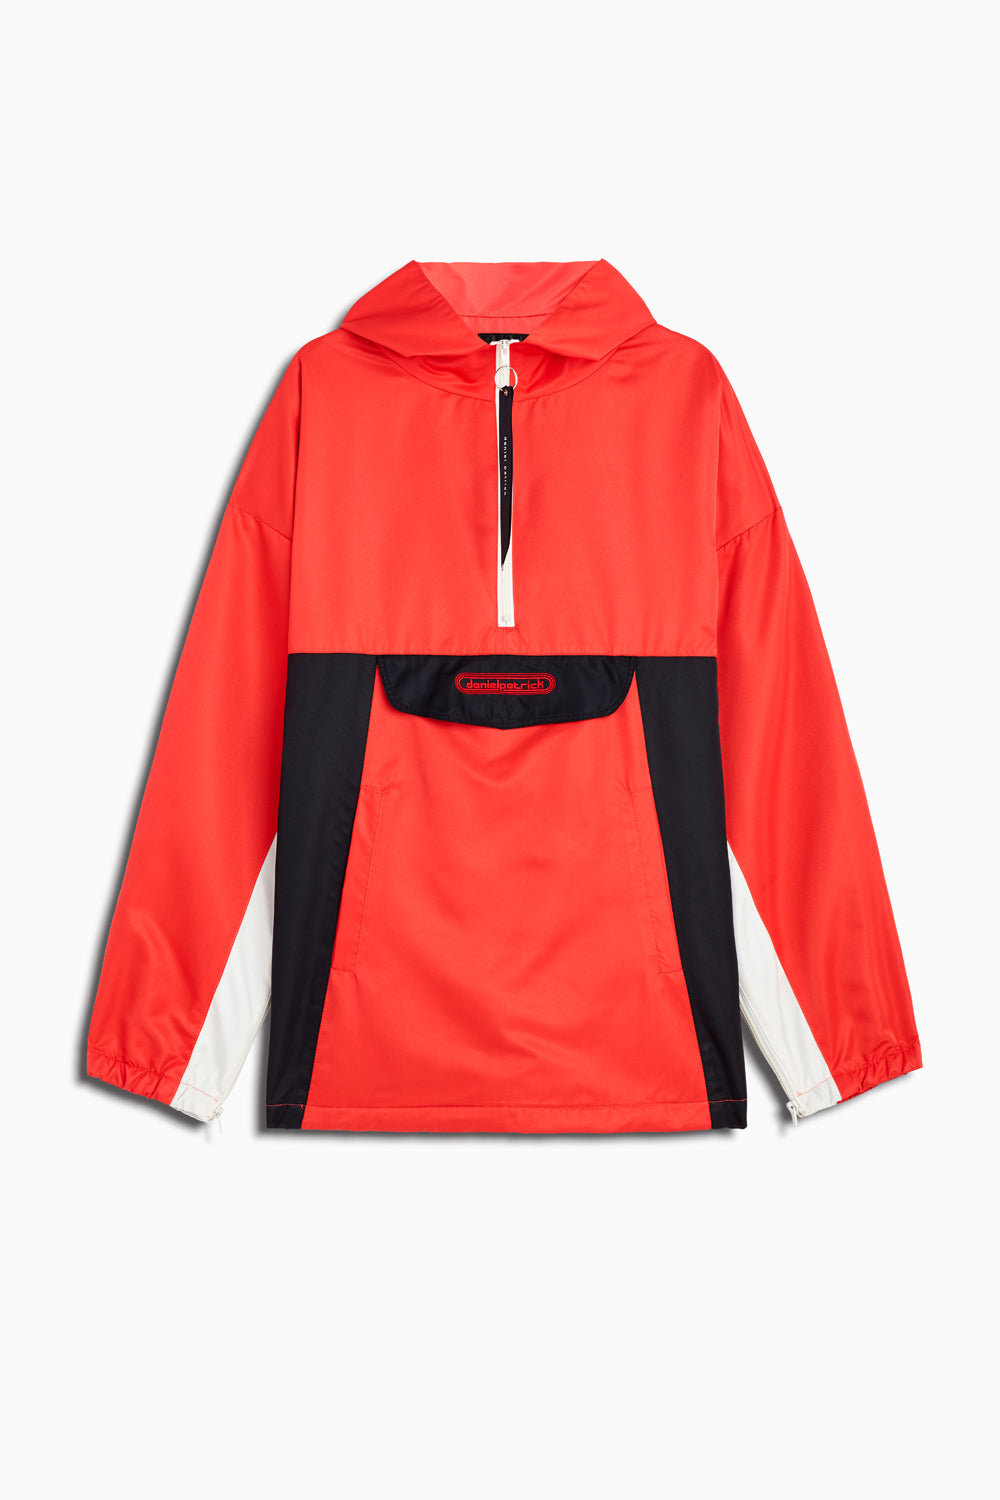 anorak windbreaker in red/black/ivory by daniel patrick